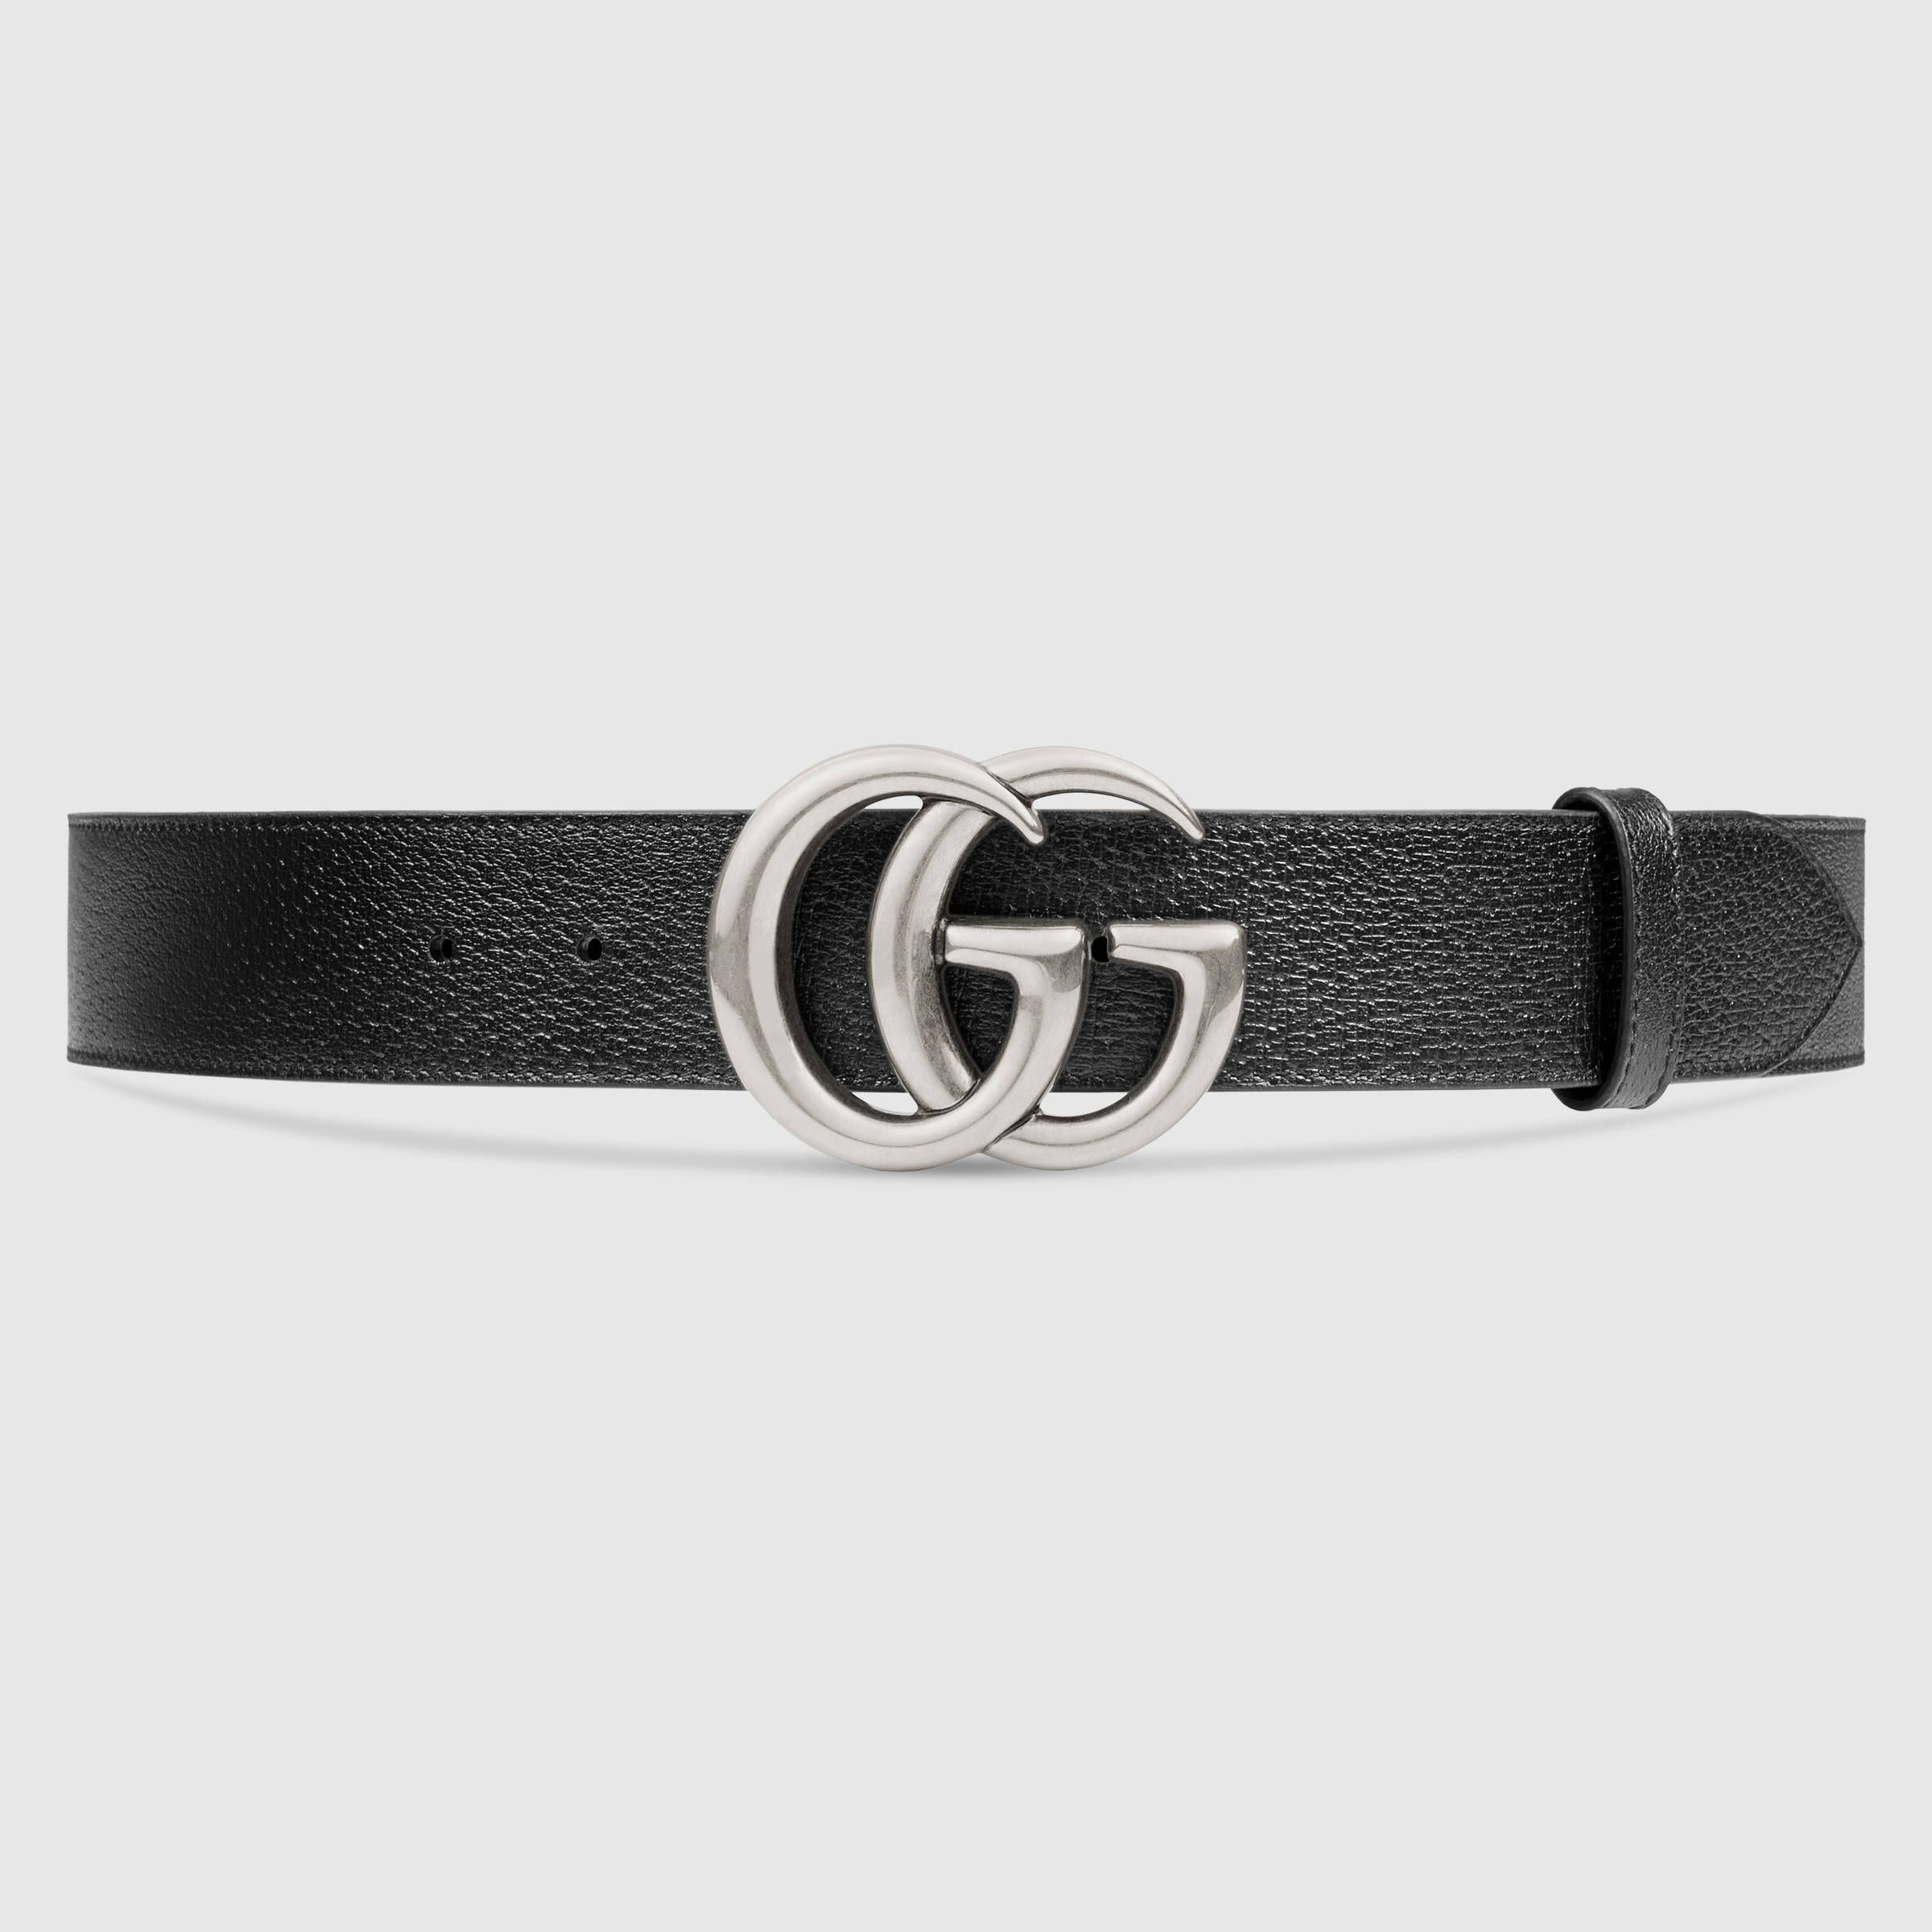 a7f6a5e8b9ea Gucci Leather belt with double G buckle  390 Style 406831 DJ20N 1000